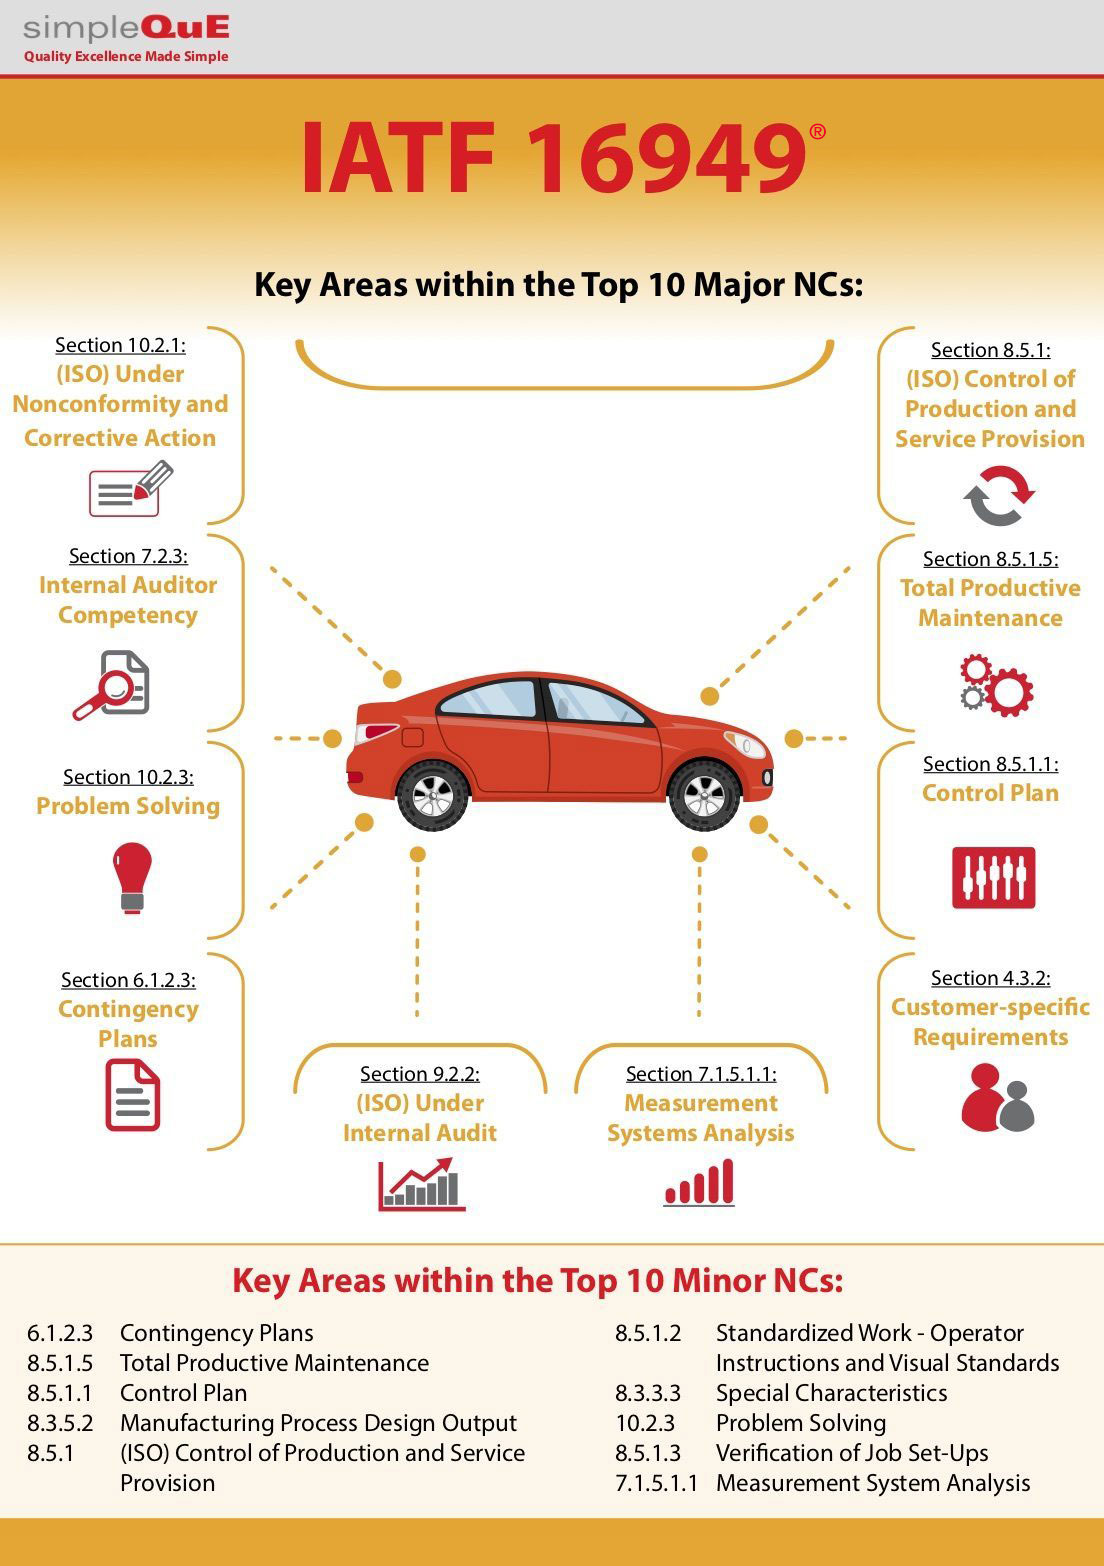 The Top Majors and Minors Nonconformances of IATF 16949® Infographic